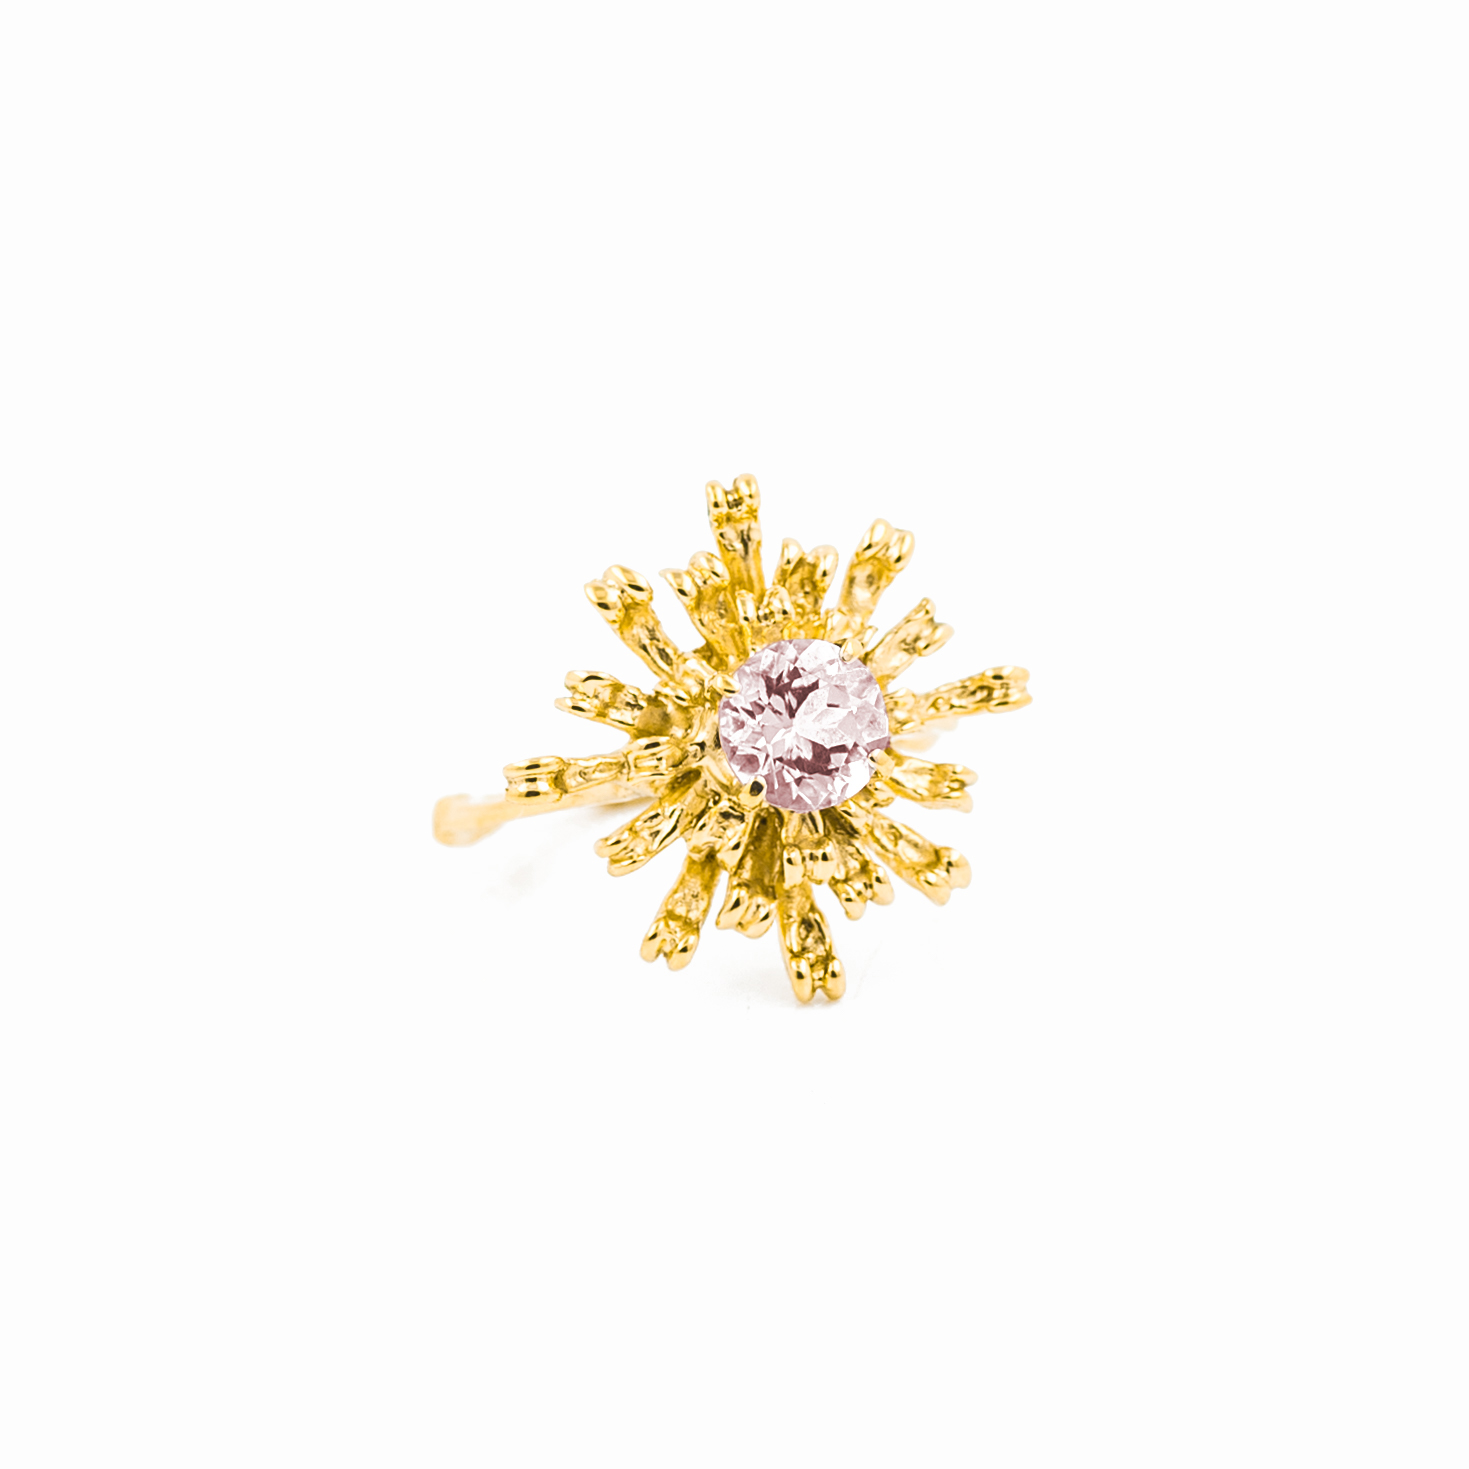 Flowers Remaining Ring : 18ct yellow gold, morganite